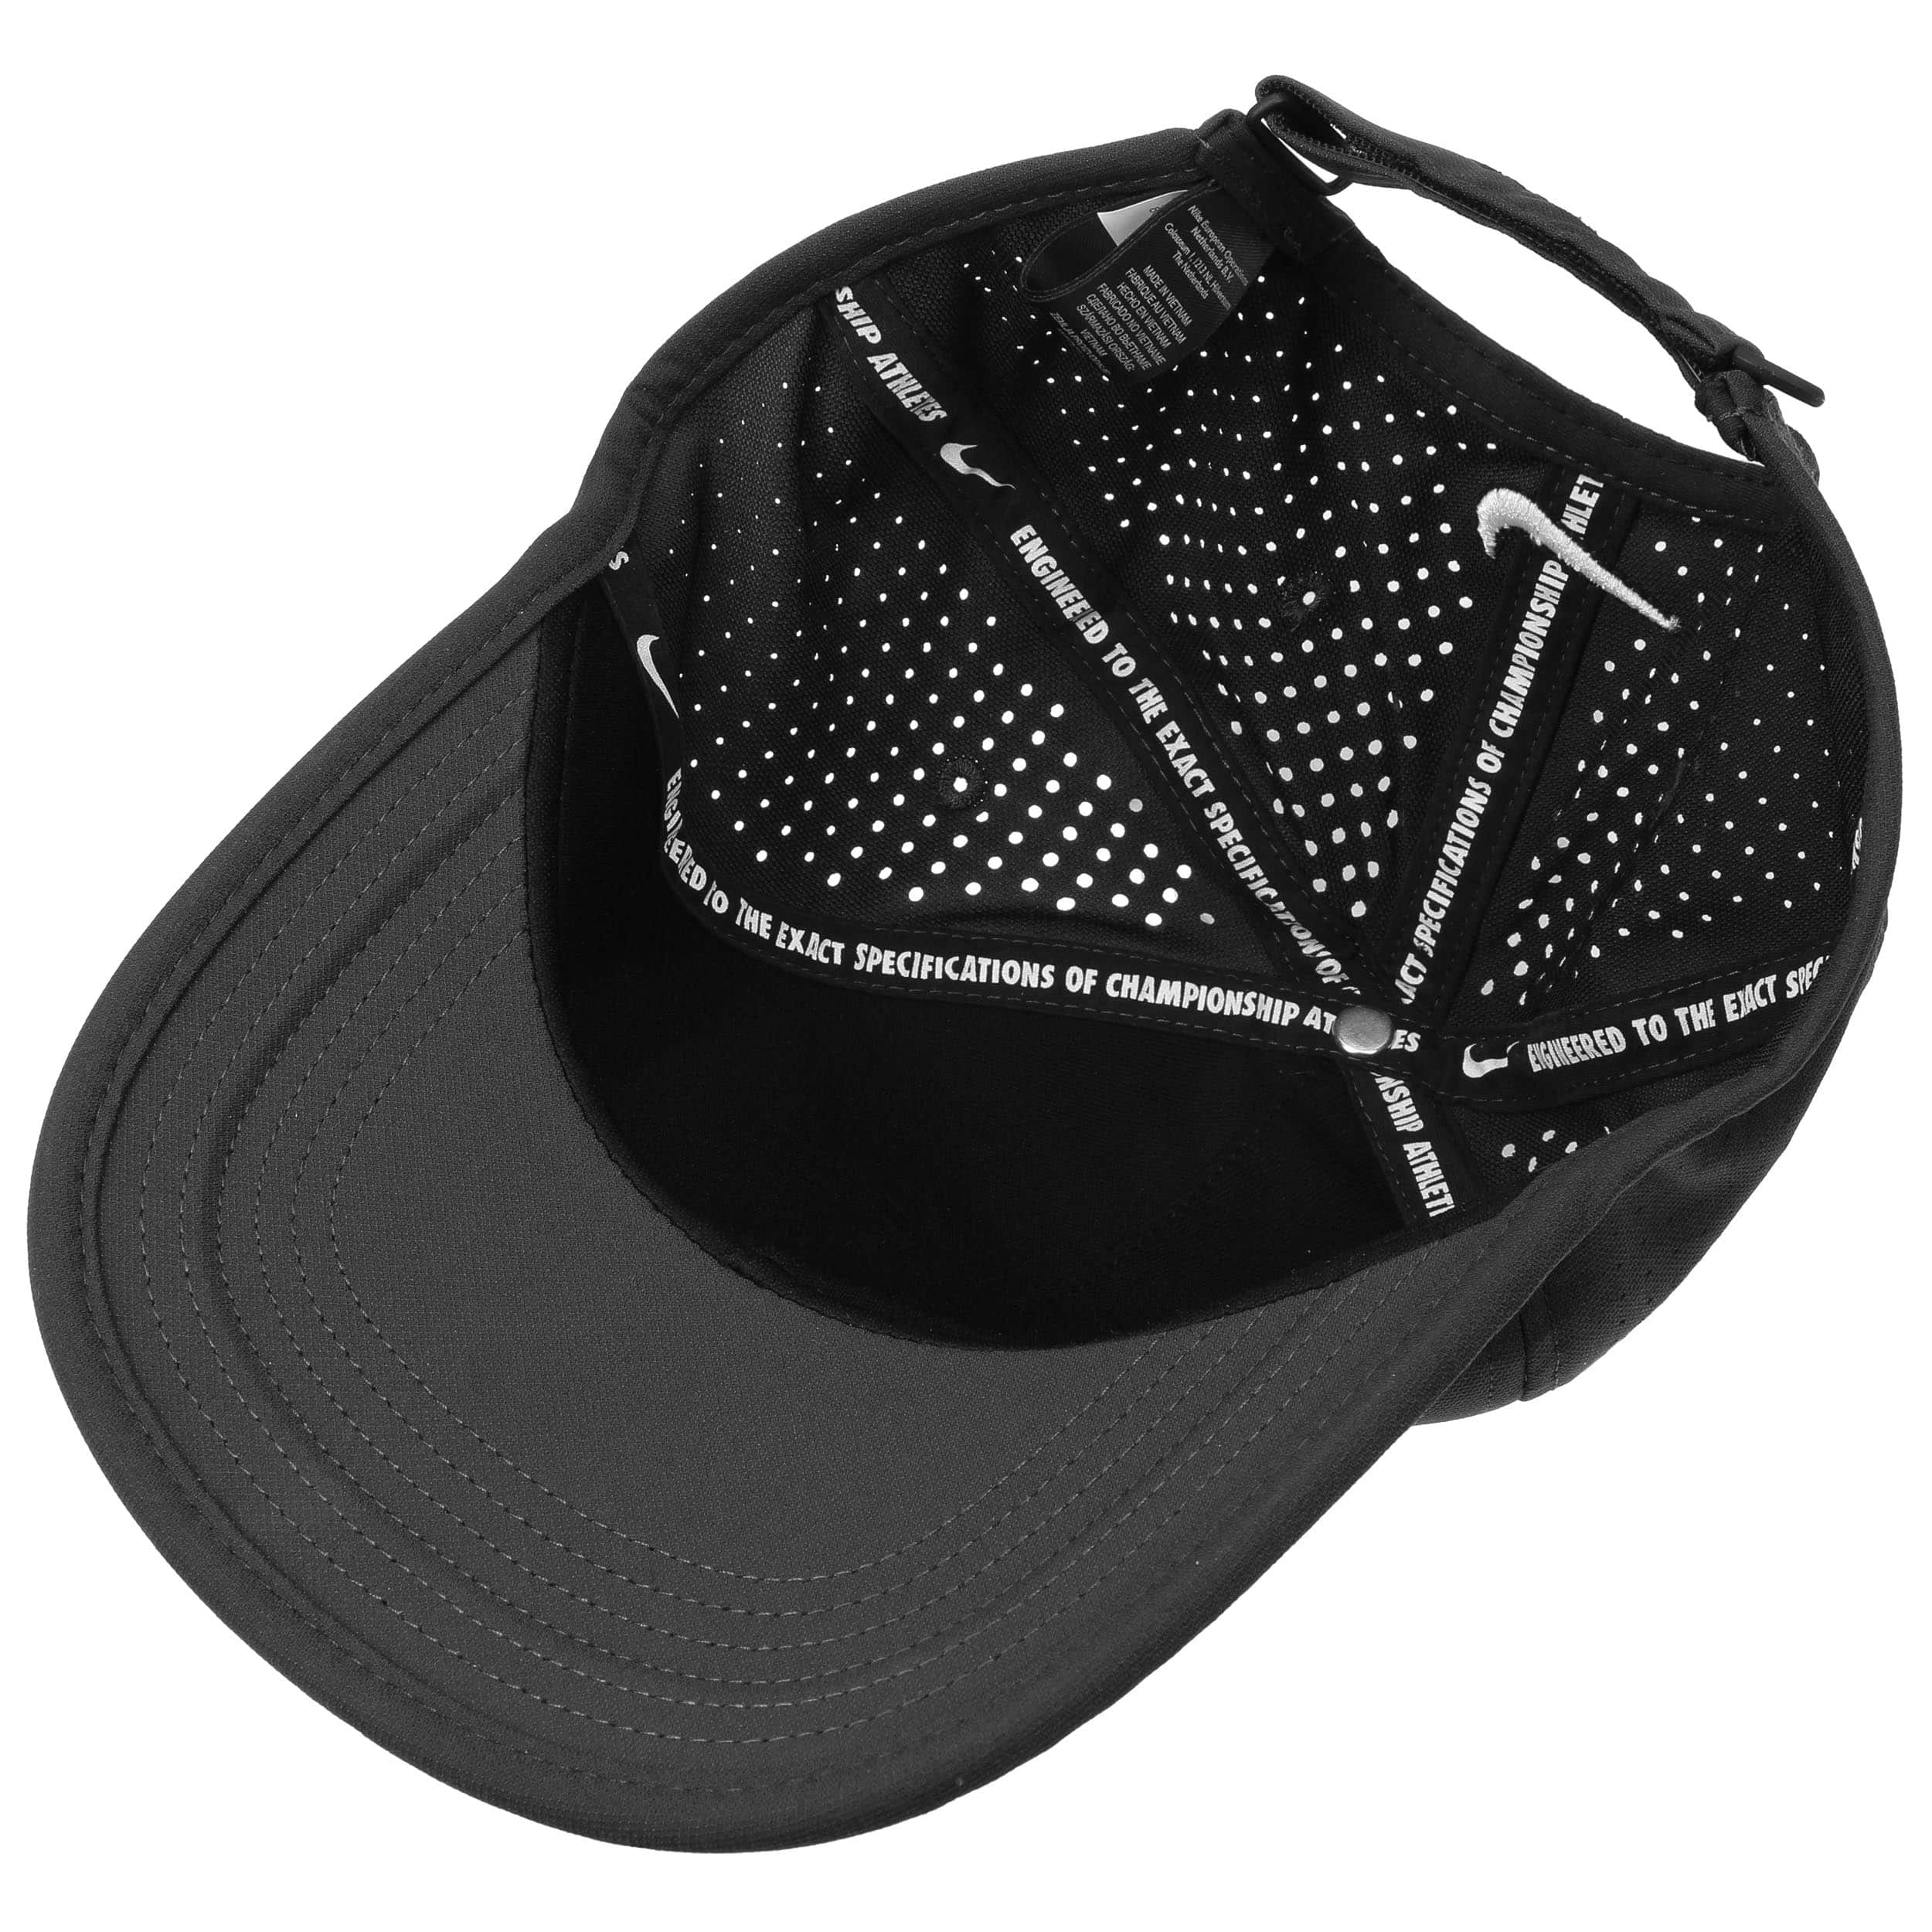 ... rot 2 · Ultralight Tour Perforation Cap by Nike - schwarz 2 ... 77e33ebfa0